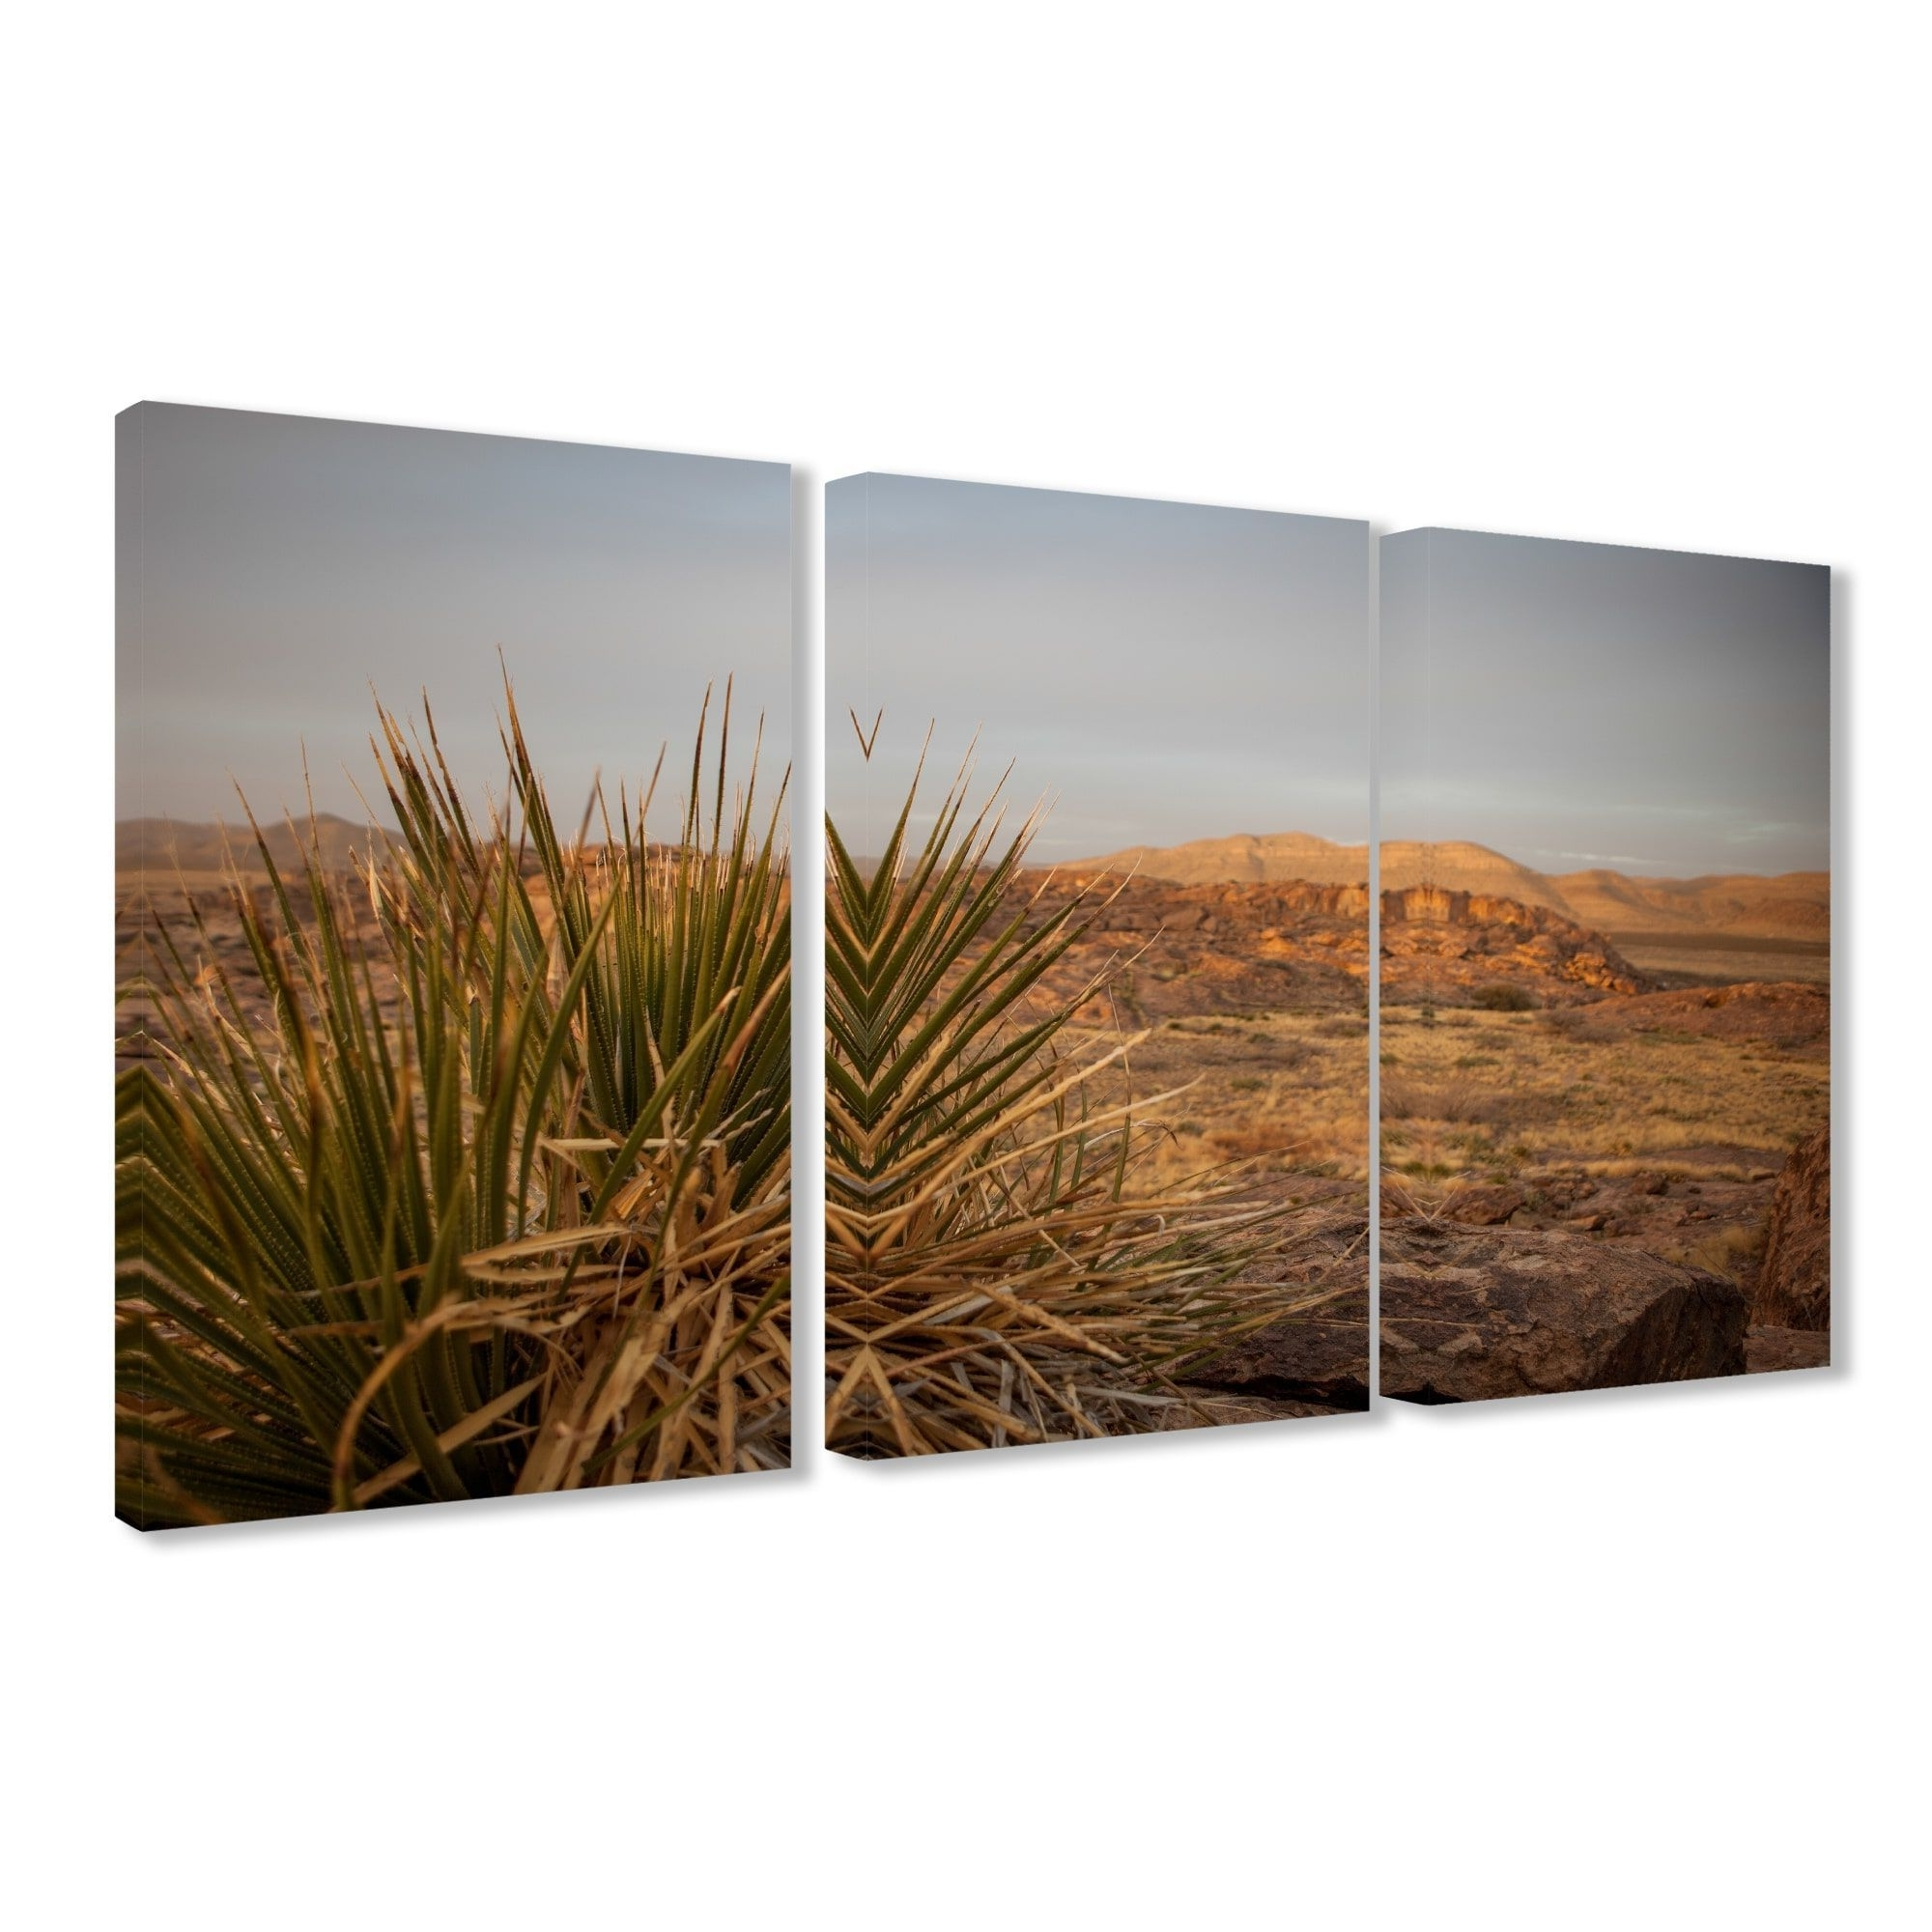 Most Recently Released Triptych Wall Art Inside Stupell High Desert Yucca Photograph Triptych Stretched Canvas Wall (View 12 of 15)